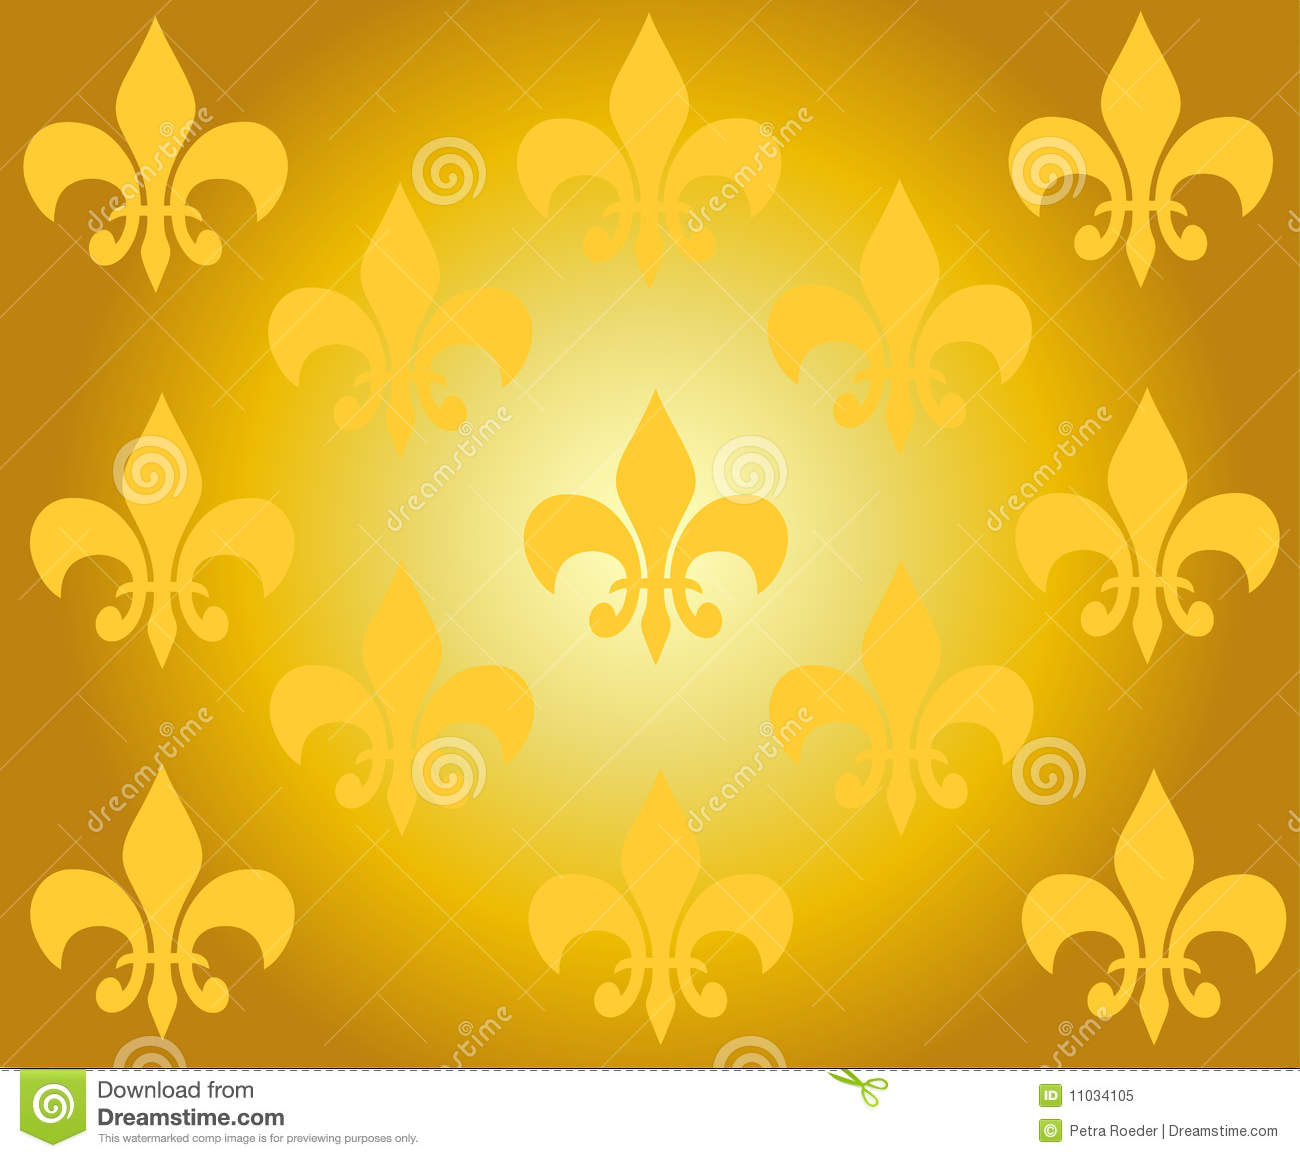 Golden Design Wallpaper : Golden wallpaper ornament design royalty free stock photo